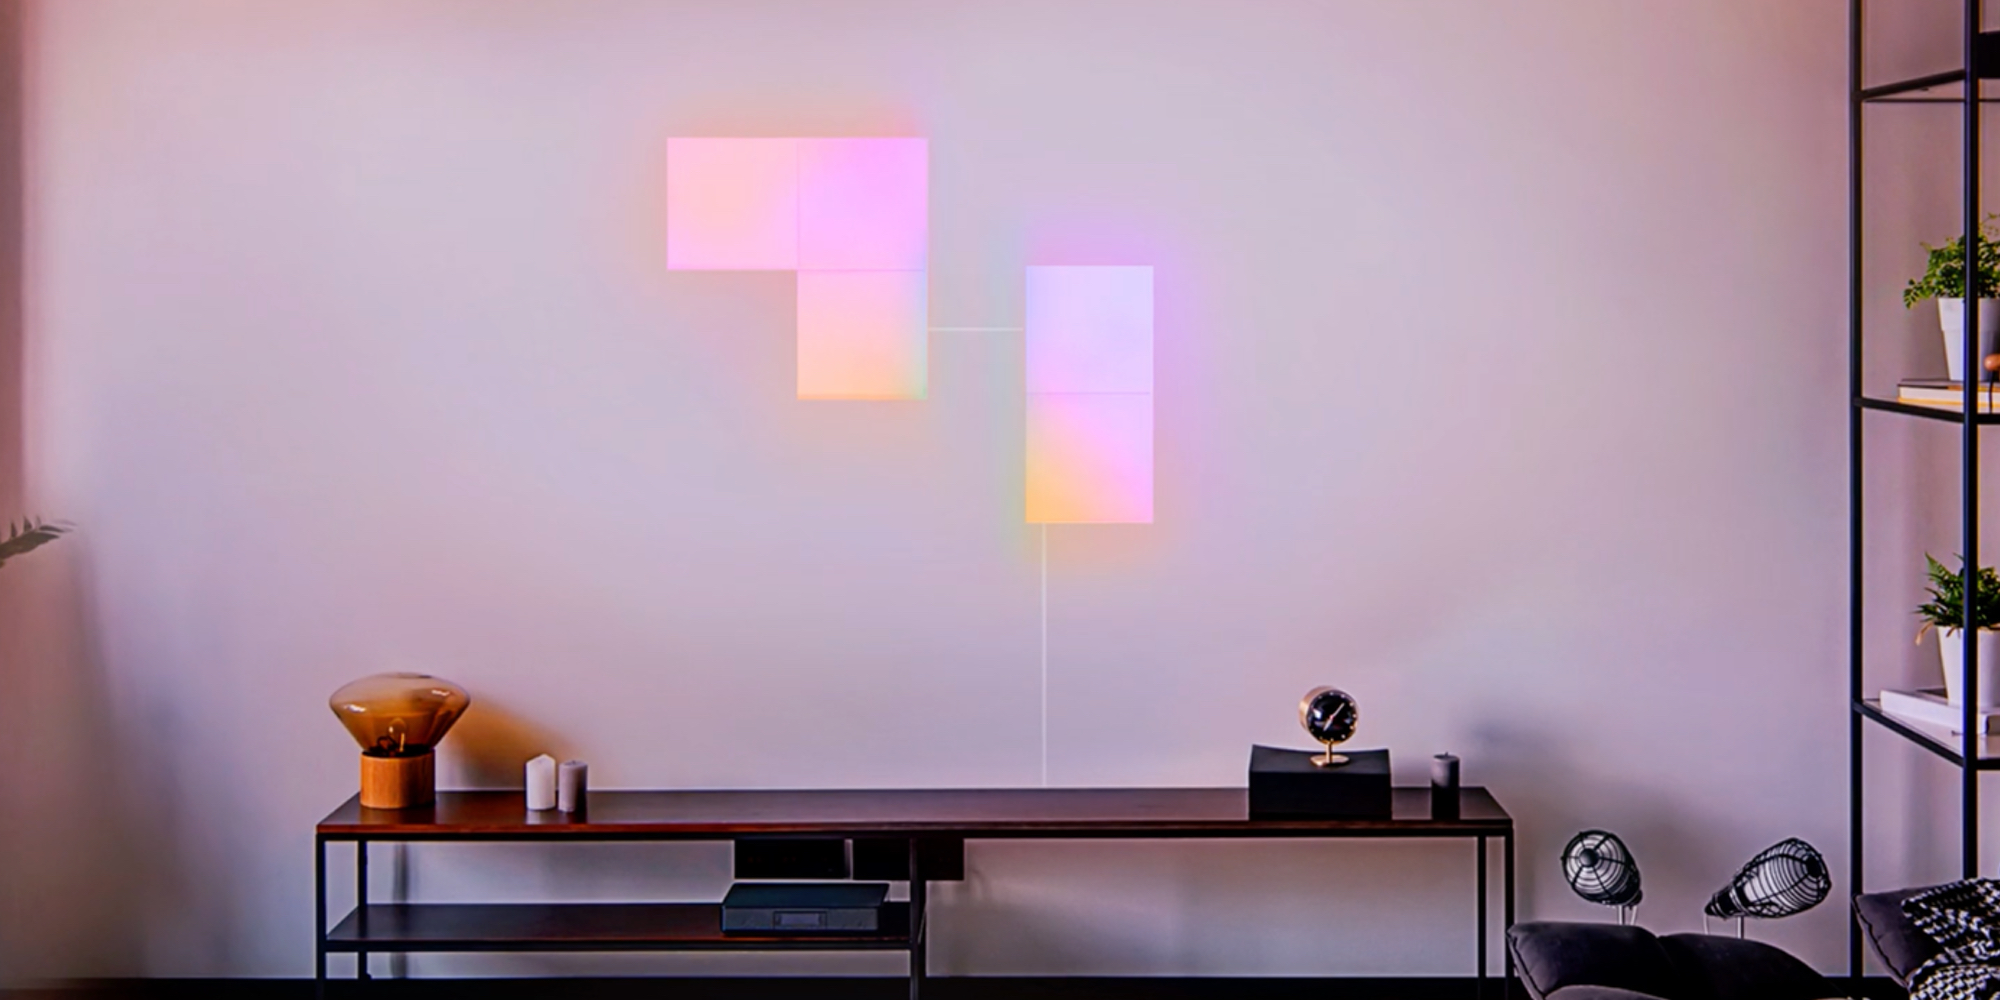 LIFX unveils new modular LED Lighting Panel system with HomeKit support and more & LIFX unveils new modular LED Lighting Panel system with HomeKit ...